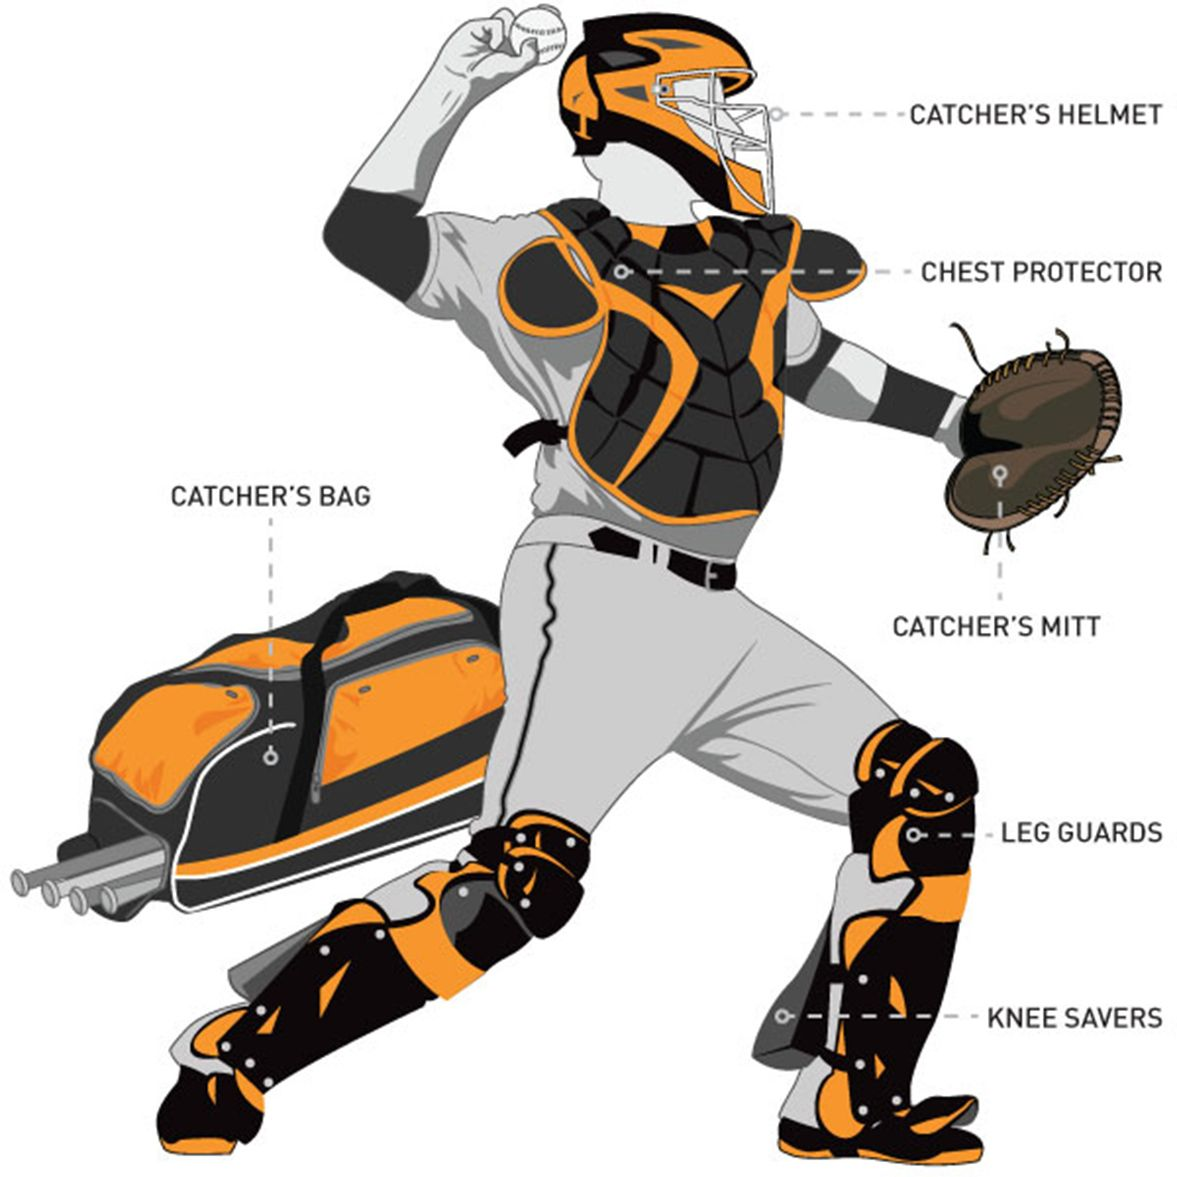 Diagram of a catcher set including - catcher's bag, catchers helmet, chest protector, catcher's mitt, leg guards, and knee savers